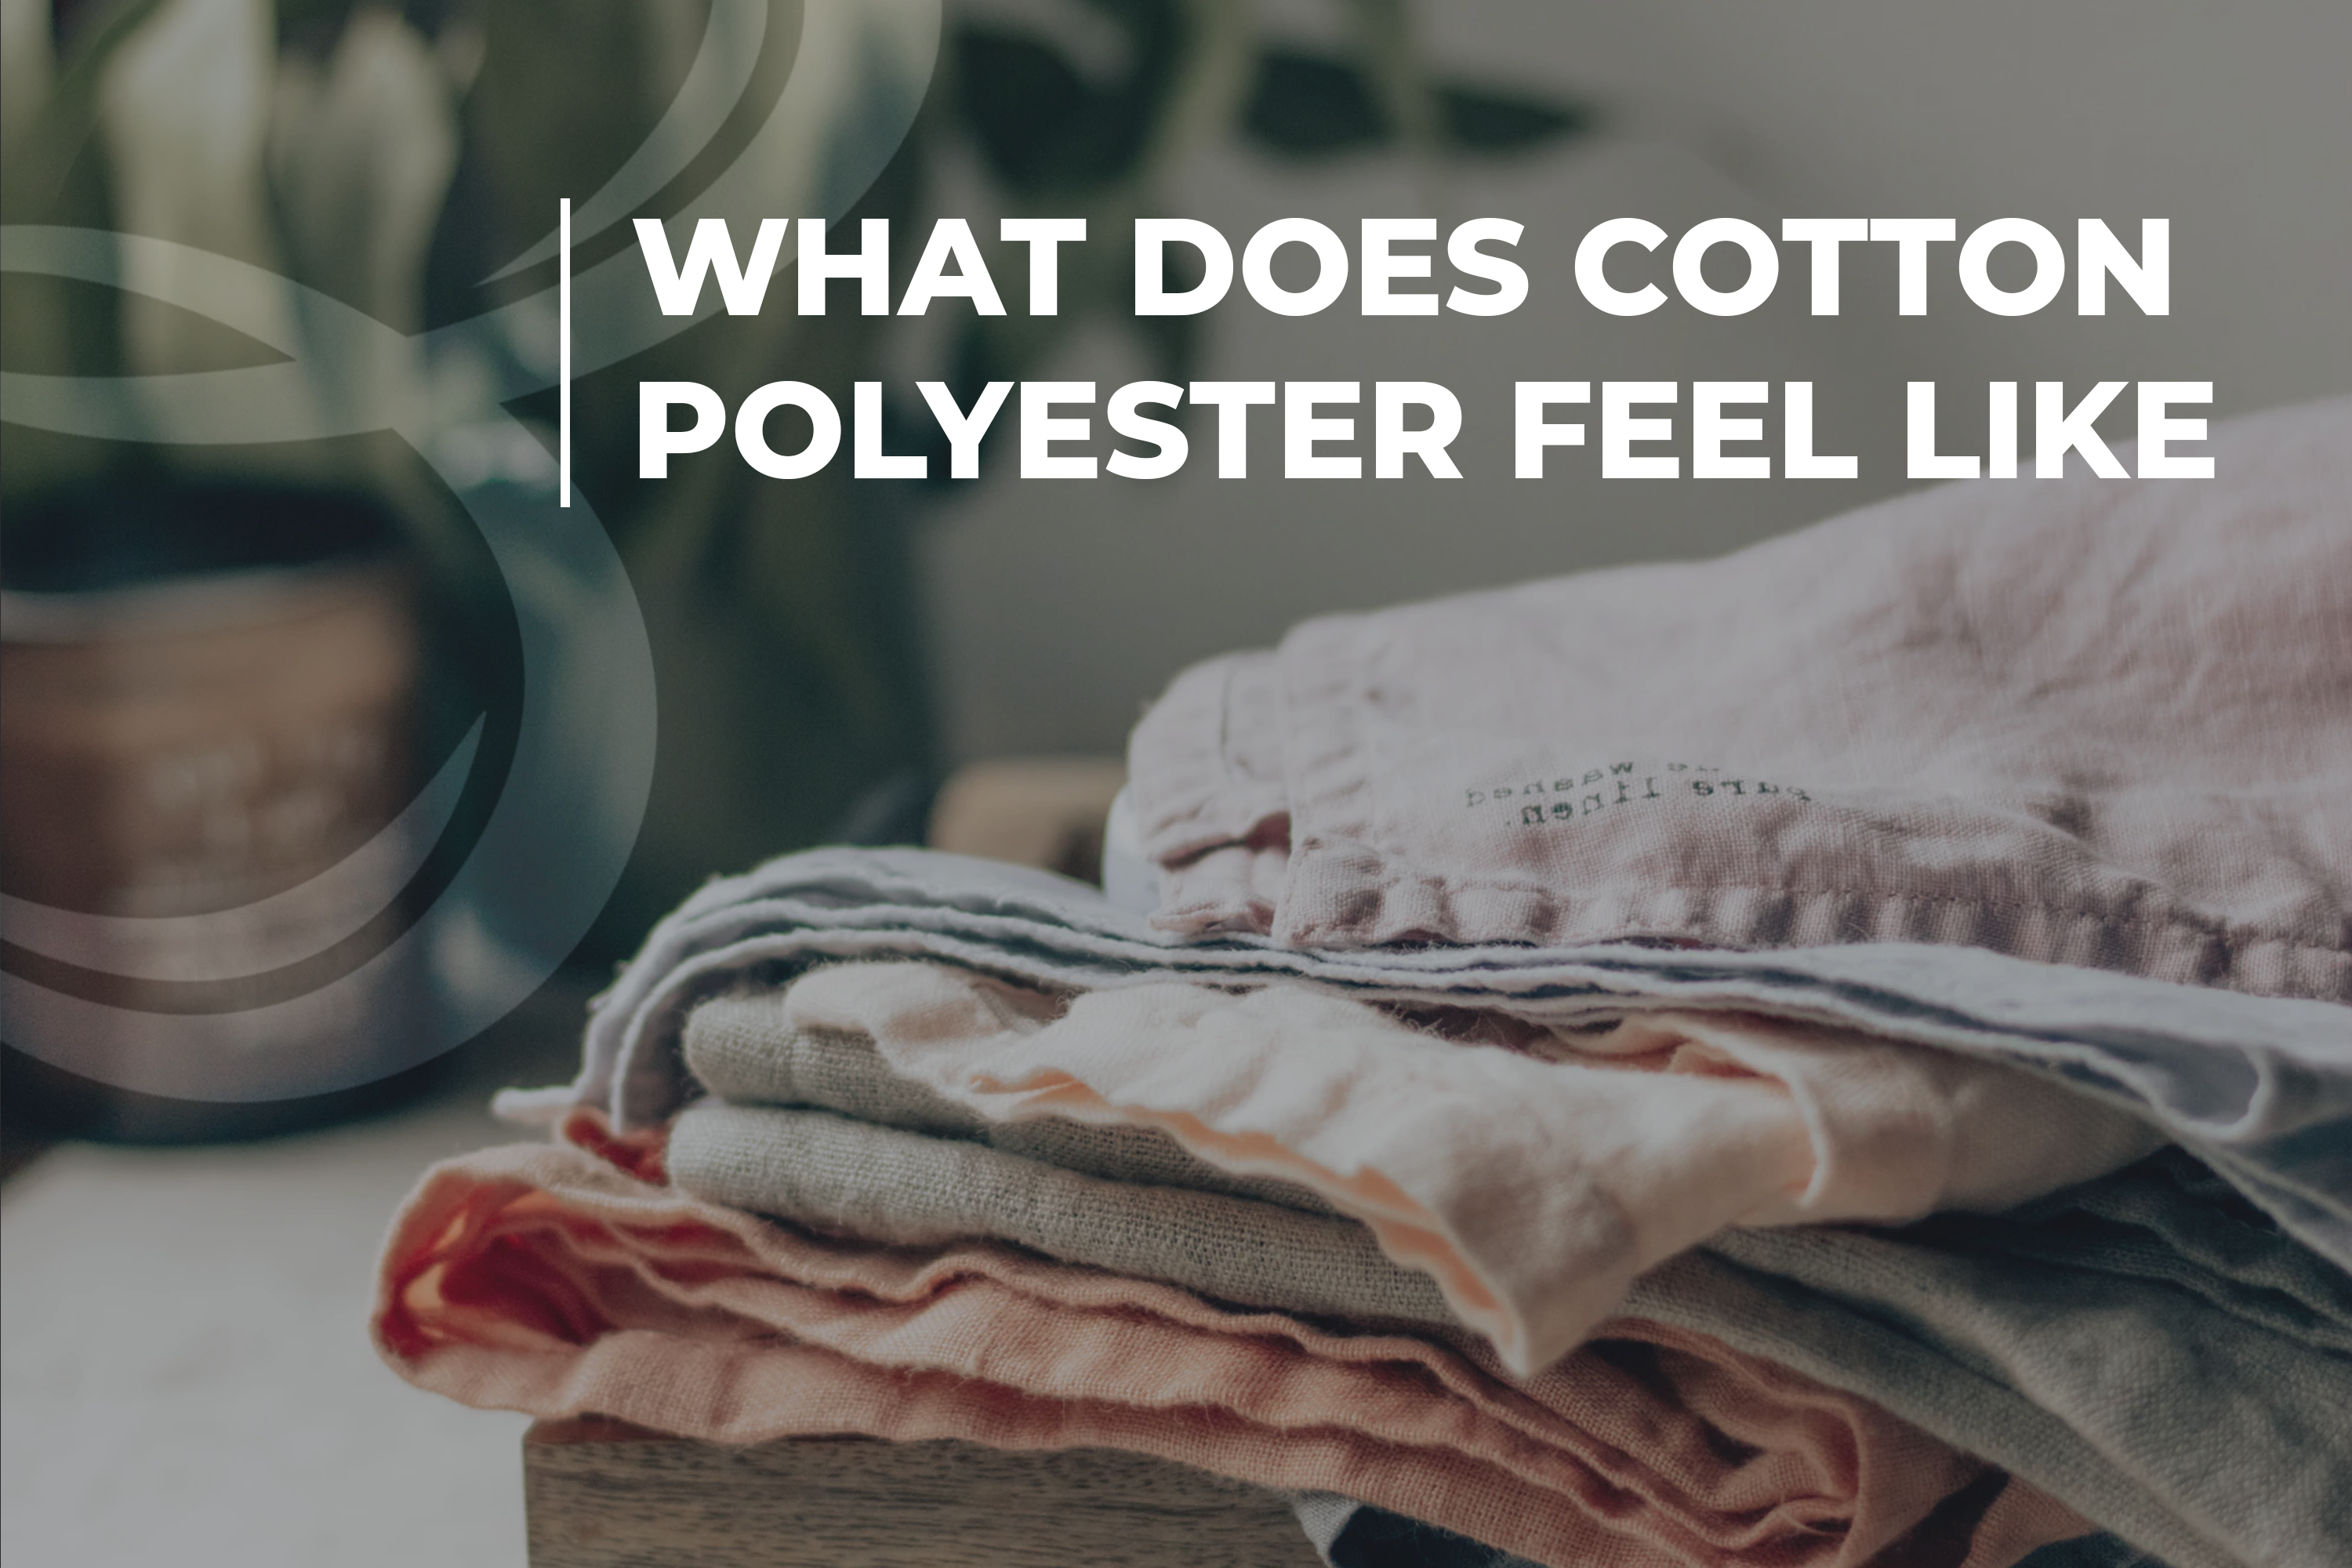 What Does Cotton Polyester Feel Like